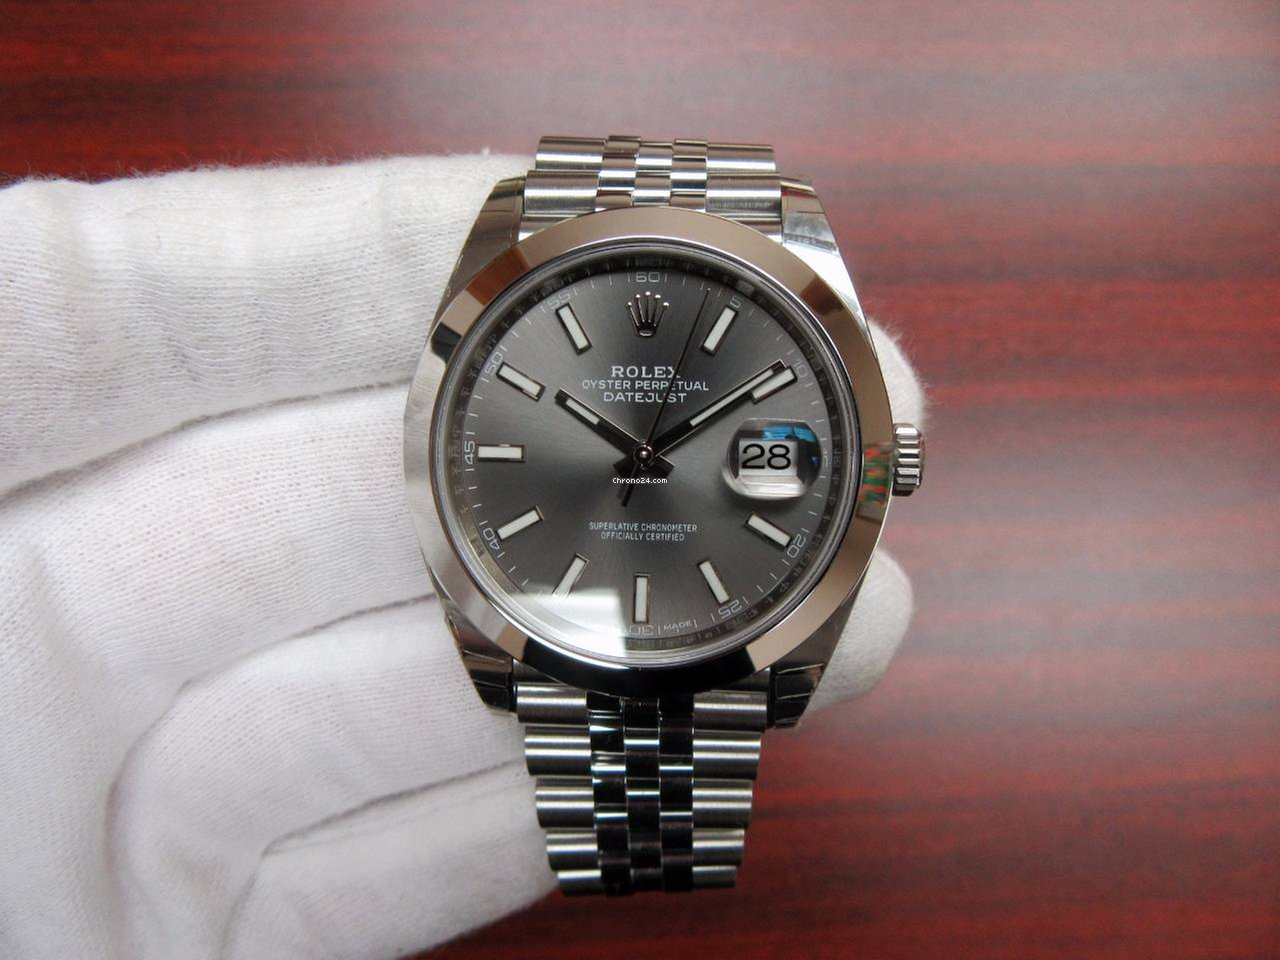 rolex datejust 41 rhodium index dial jubilee bracelet f r kaufen von einem trusted. Black Bedroom Furniture Sets. Home Design Ideas